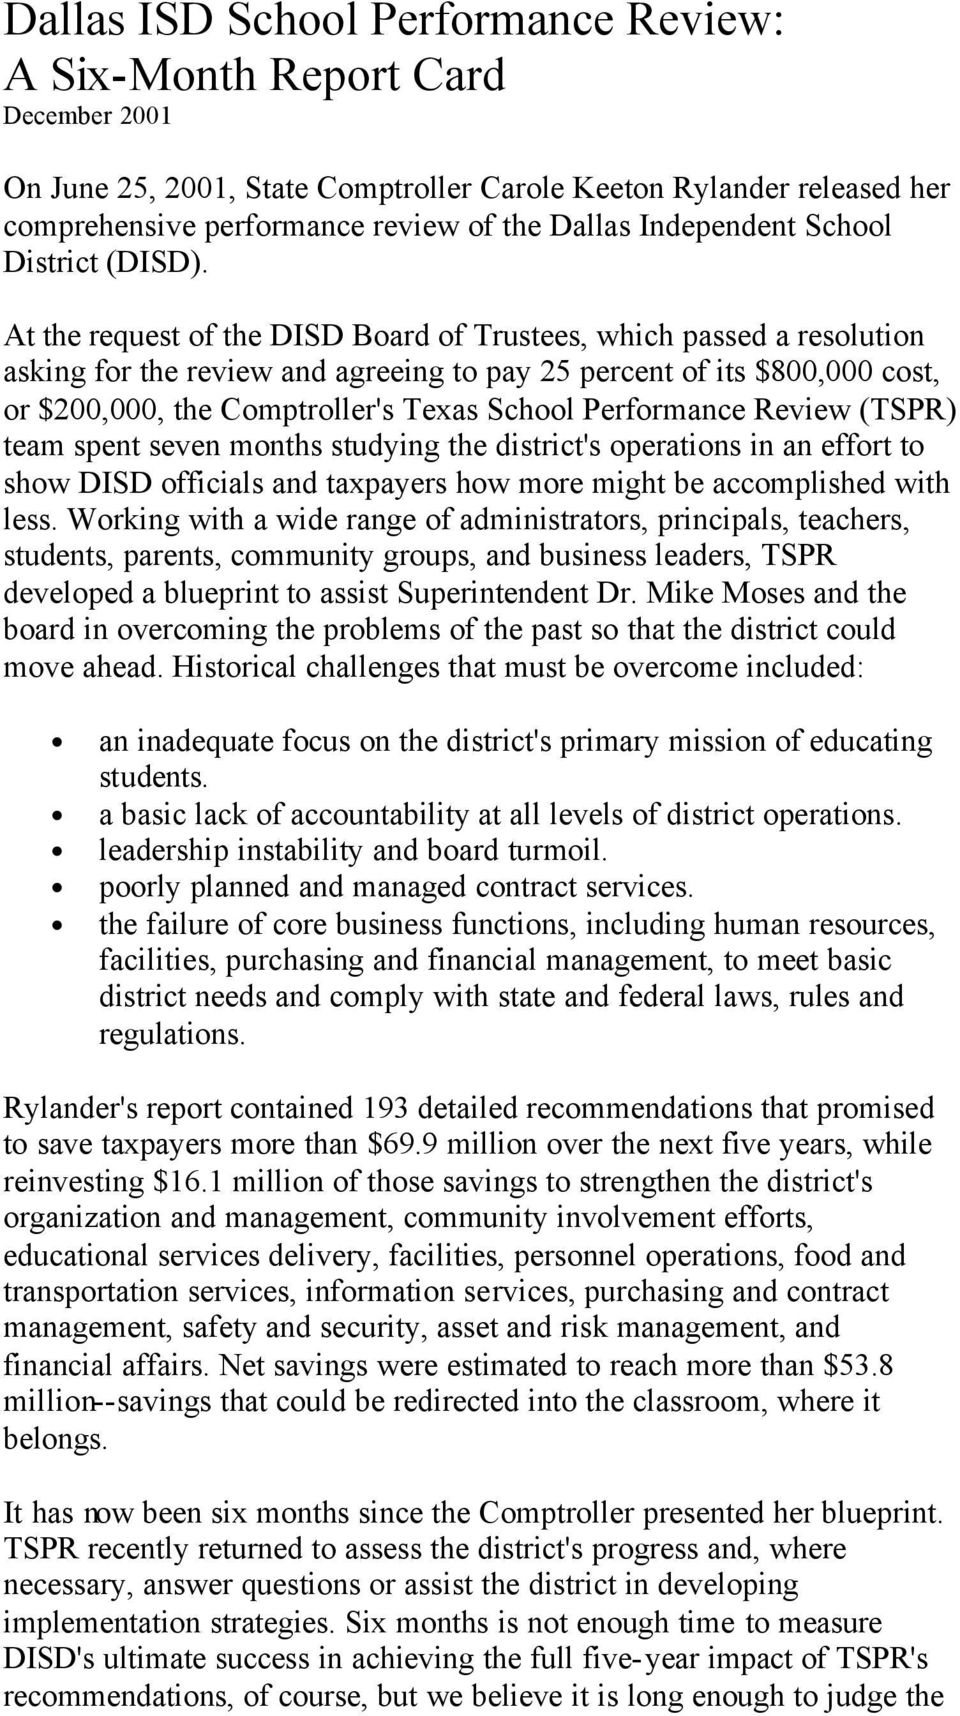 At the request of the DISD Board of Trustees, which passed a resolution asking for the review and agreeing to pay 25 percent of its $800,000 cost, or $200,000, the Comptroller's Texas School